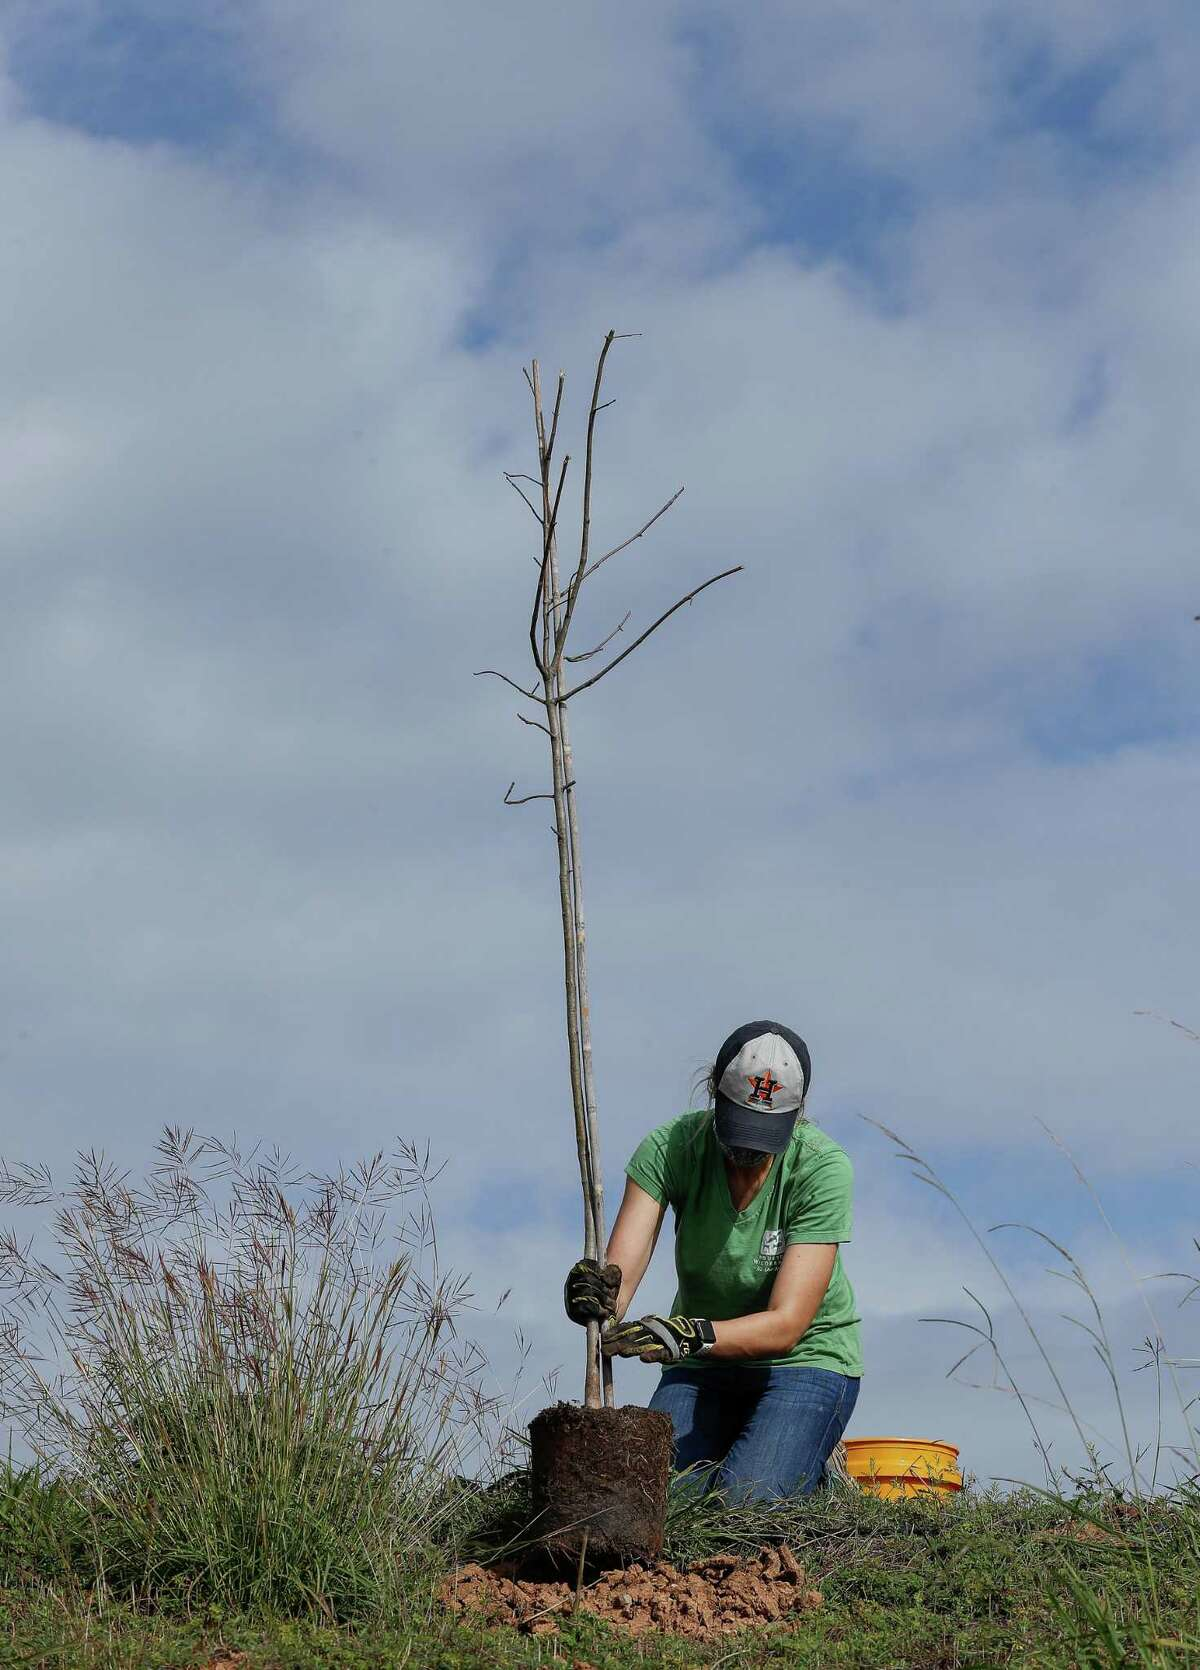 """Kim Philippi, with Houston Wilderness, plants one of 120 native """"Super Trees"""" at the Bayport Terminal Berm, to helpf concluding the planting of 1,500 trees there, on Friday, Nov. 20, 2020, in Seabrook, Texas. """"Super Trees"""" are trees with high rates of carbon absorption, flood mitigation, and greenhouse gas absorption. The effort is part of Houston Wilderness's Gulf Houston Regional Conservation Plan, which calls for a 4 percent increase in organic carbon absorption every year to benefit air quality and help reduce urban heat spikes in the region."""